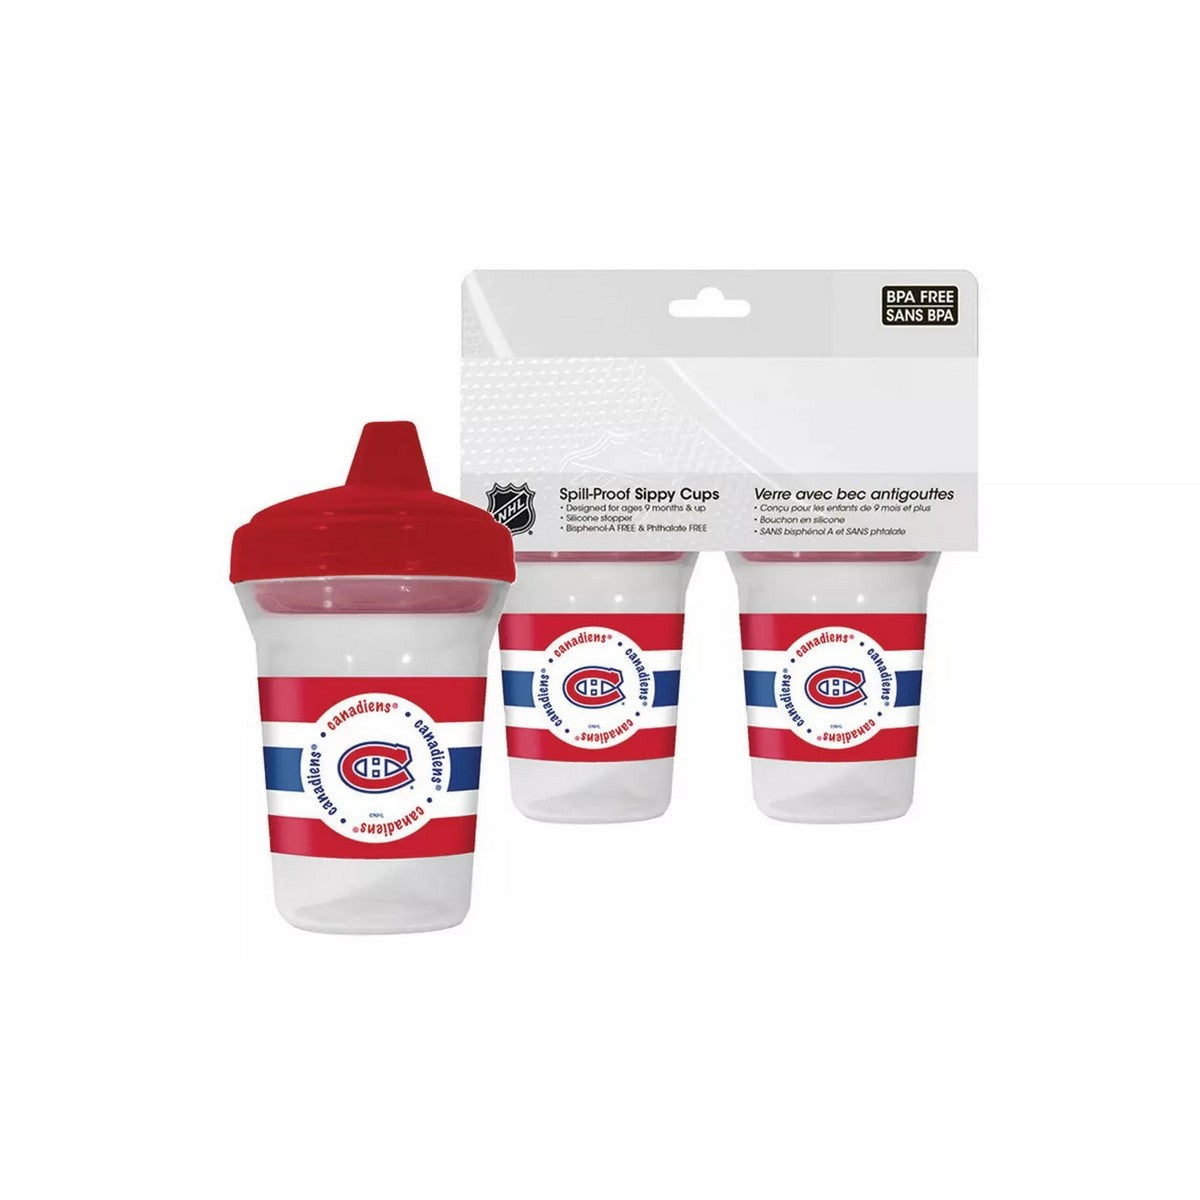 🏒 NHL Canadiens Spill-Proof Sippy Cups (2-Pack)